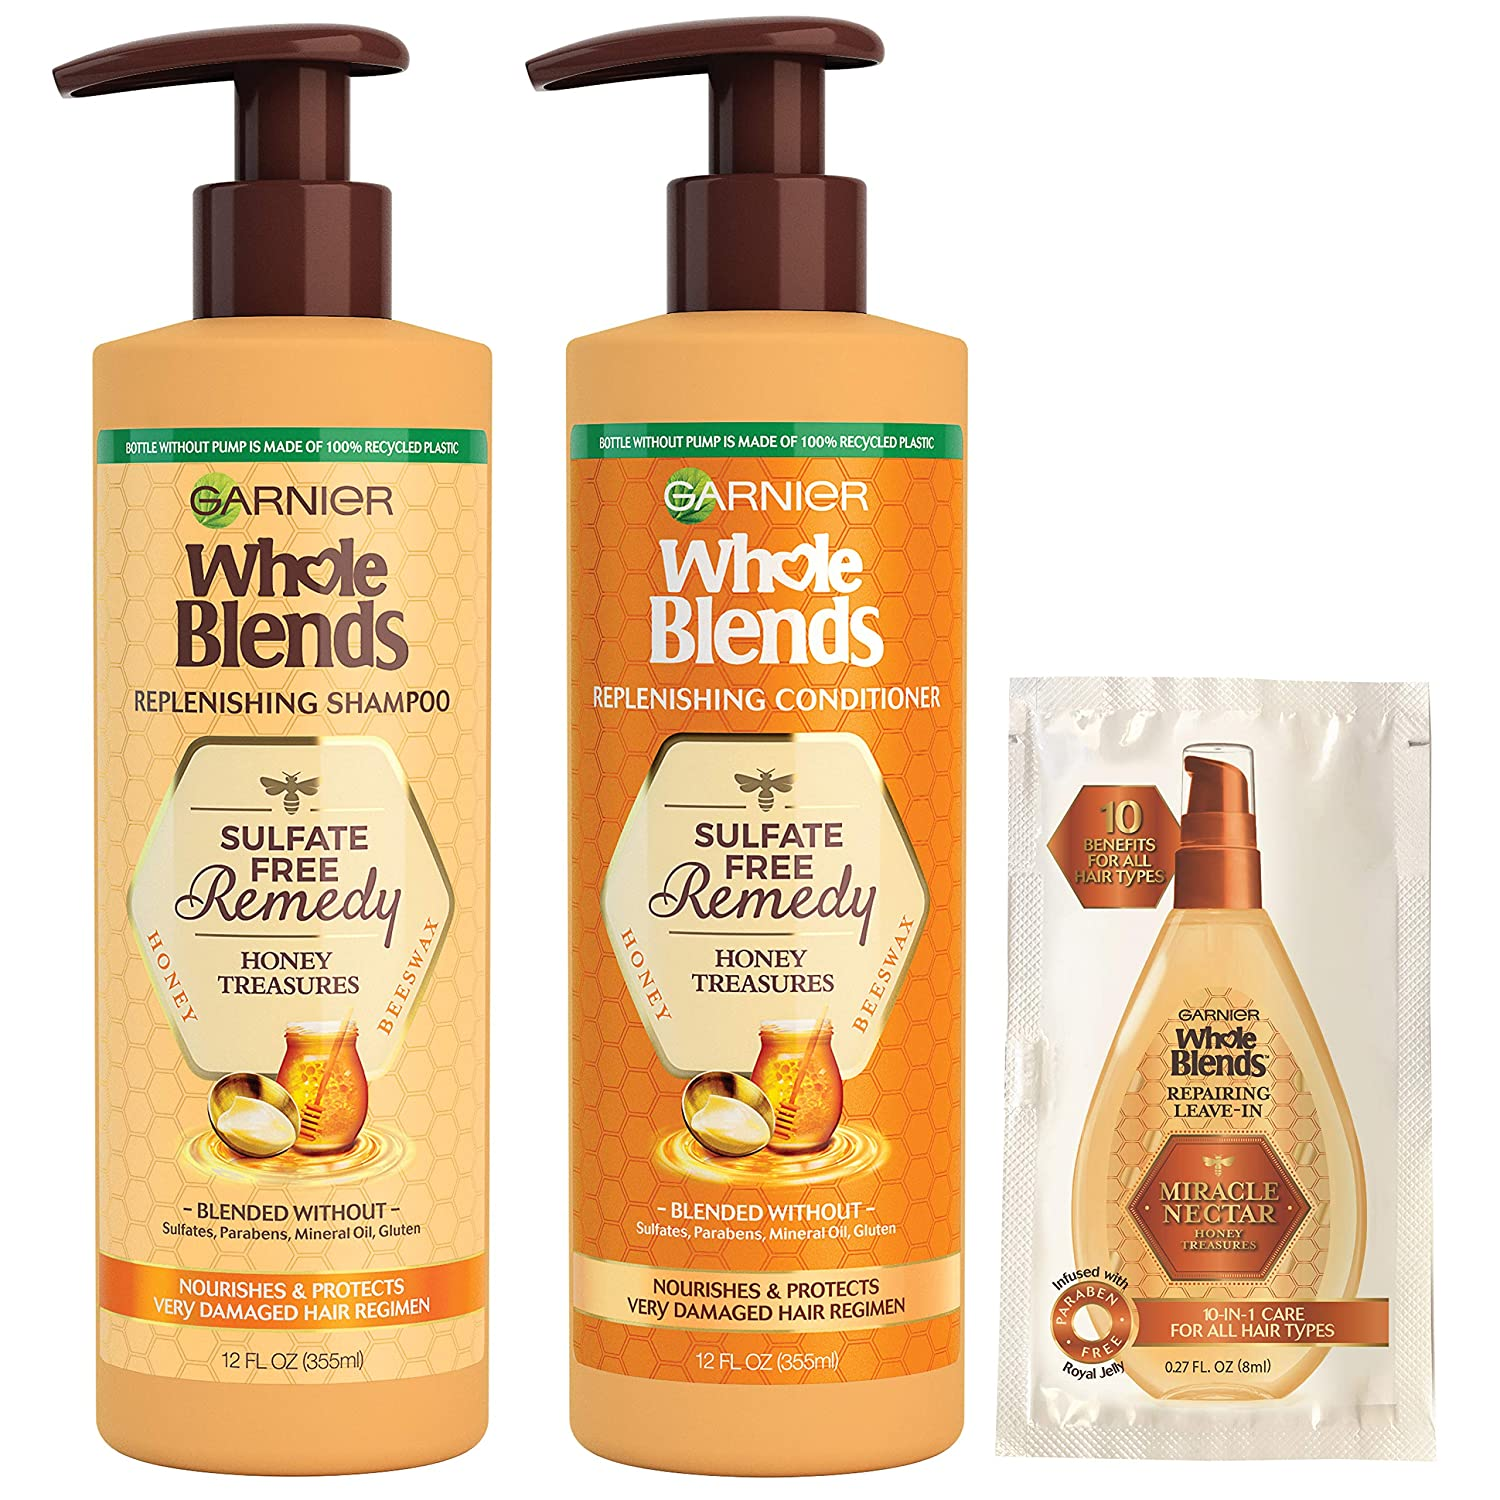 Garnier Haircare Whole Blends Sulfate Free Remedy Honey Treasures Replenishing Shampoo and Conditioner, Nourishes and Protects Very Damaged Hair, with Mask Sample (Package May Vary),, 12 Fl Oz